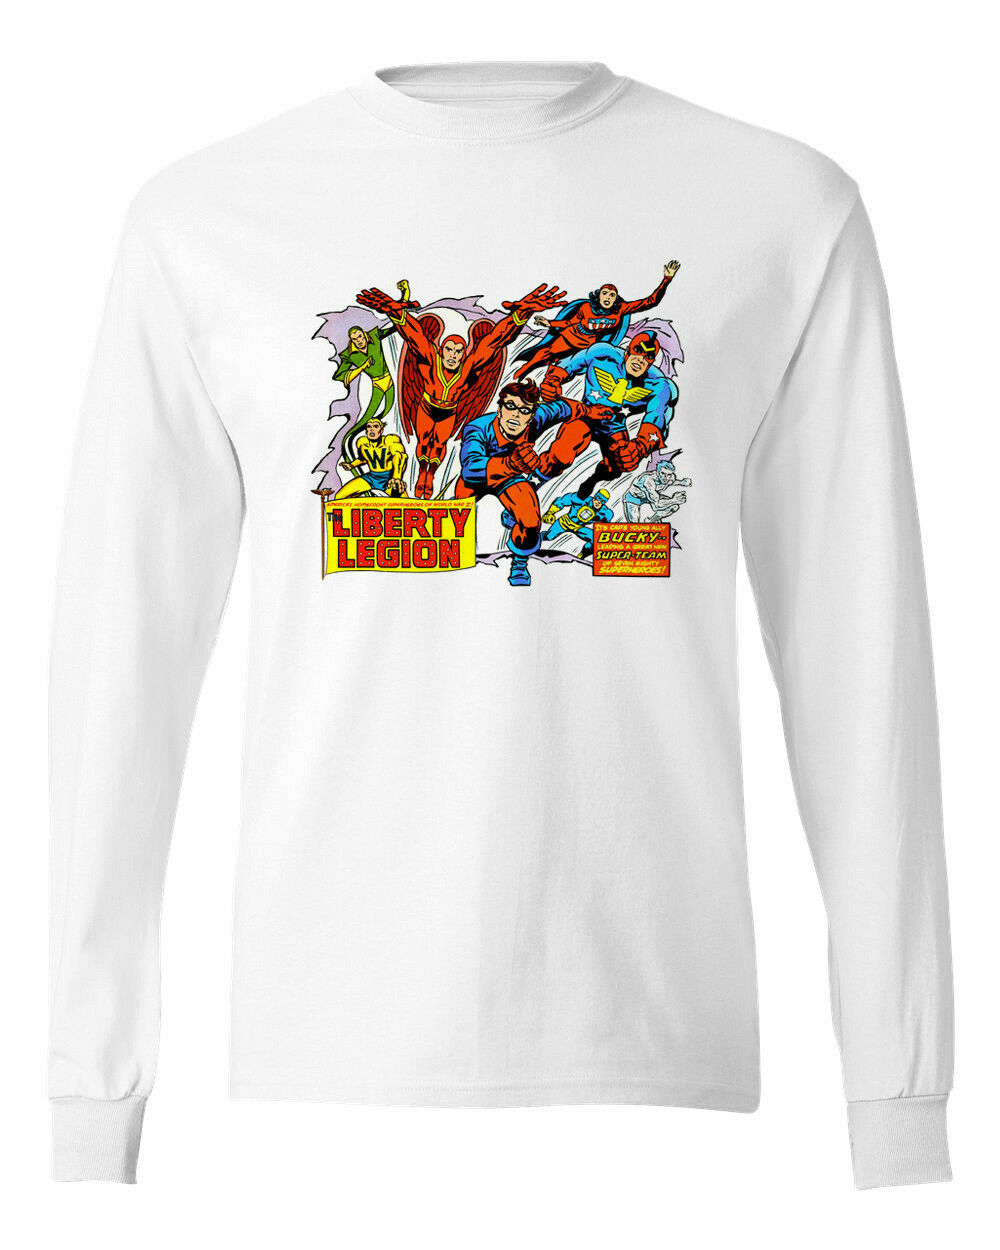 Liberty Legion T shirt retro Marvel Comics Bucky cotton long sleeve graphic tee